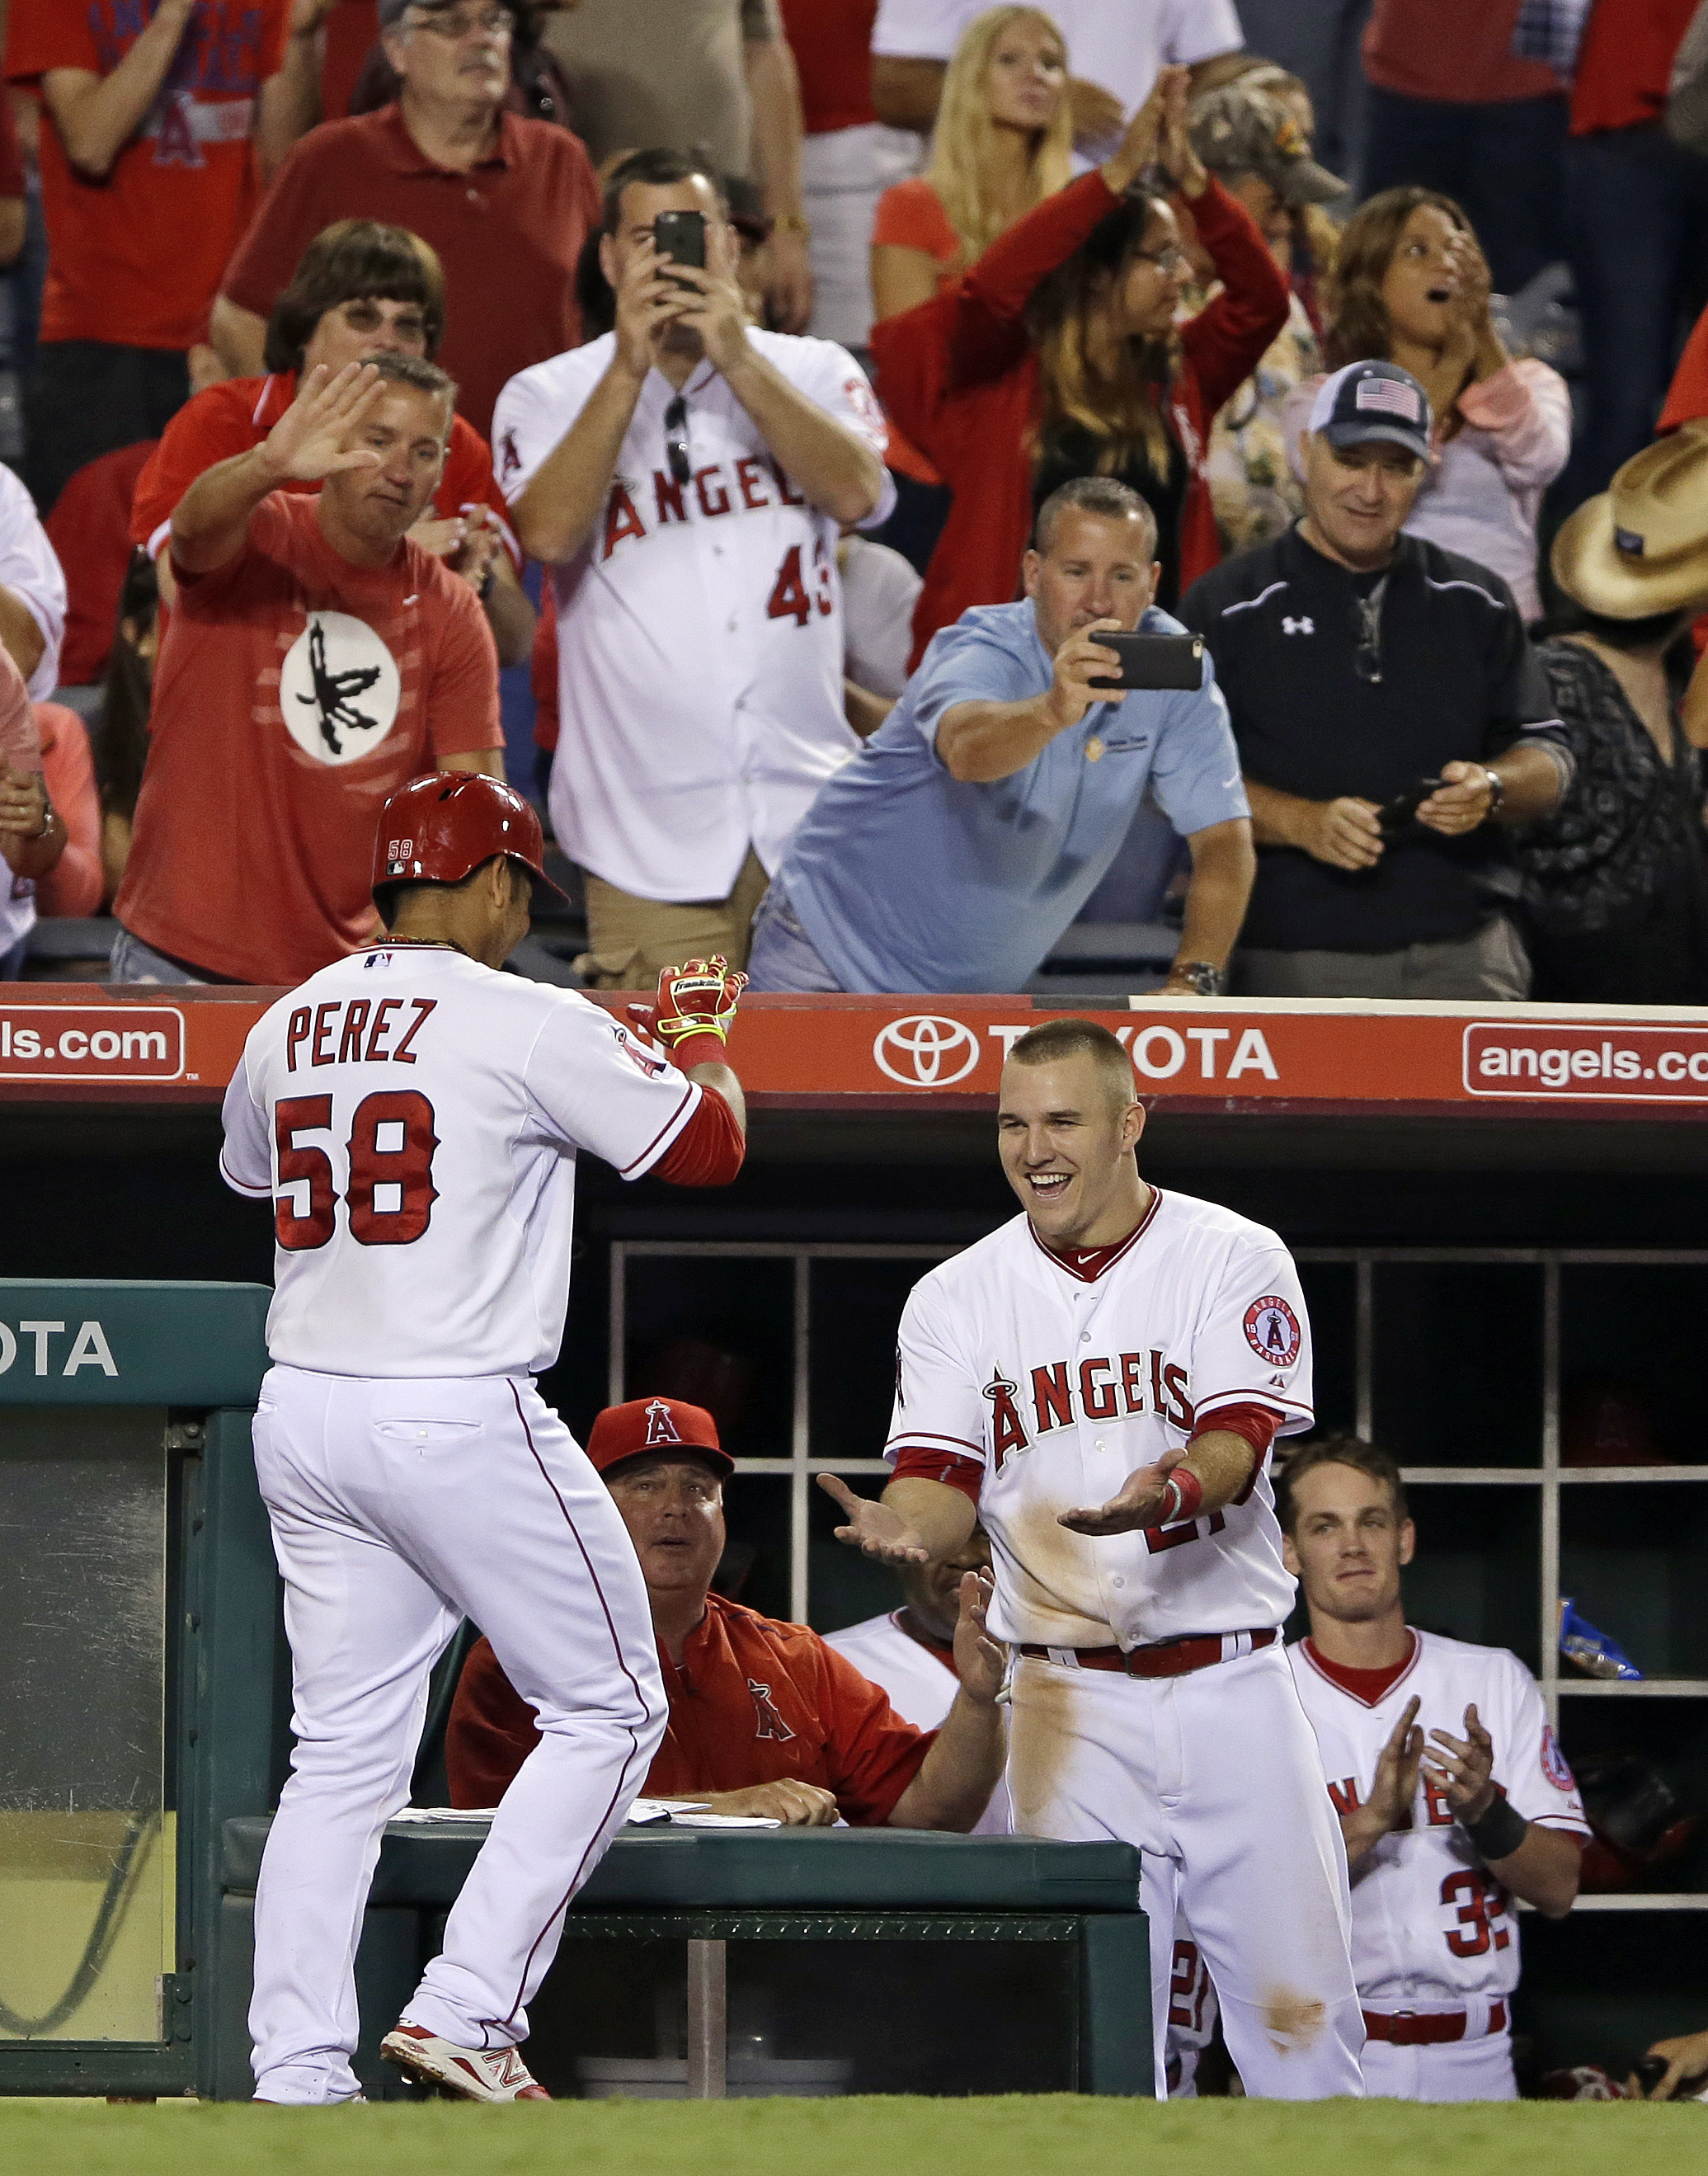 Los Angeles Angels' Carlos Perez, left, celebrates with Mike Trout after hitting a home run against the Chicago White Sox during the sixth inning of a baseball game in Anaheim, Calif., Wednesday, Aug. 19, 2015. (AP Photo/Chris Carlson)